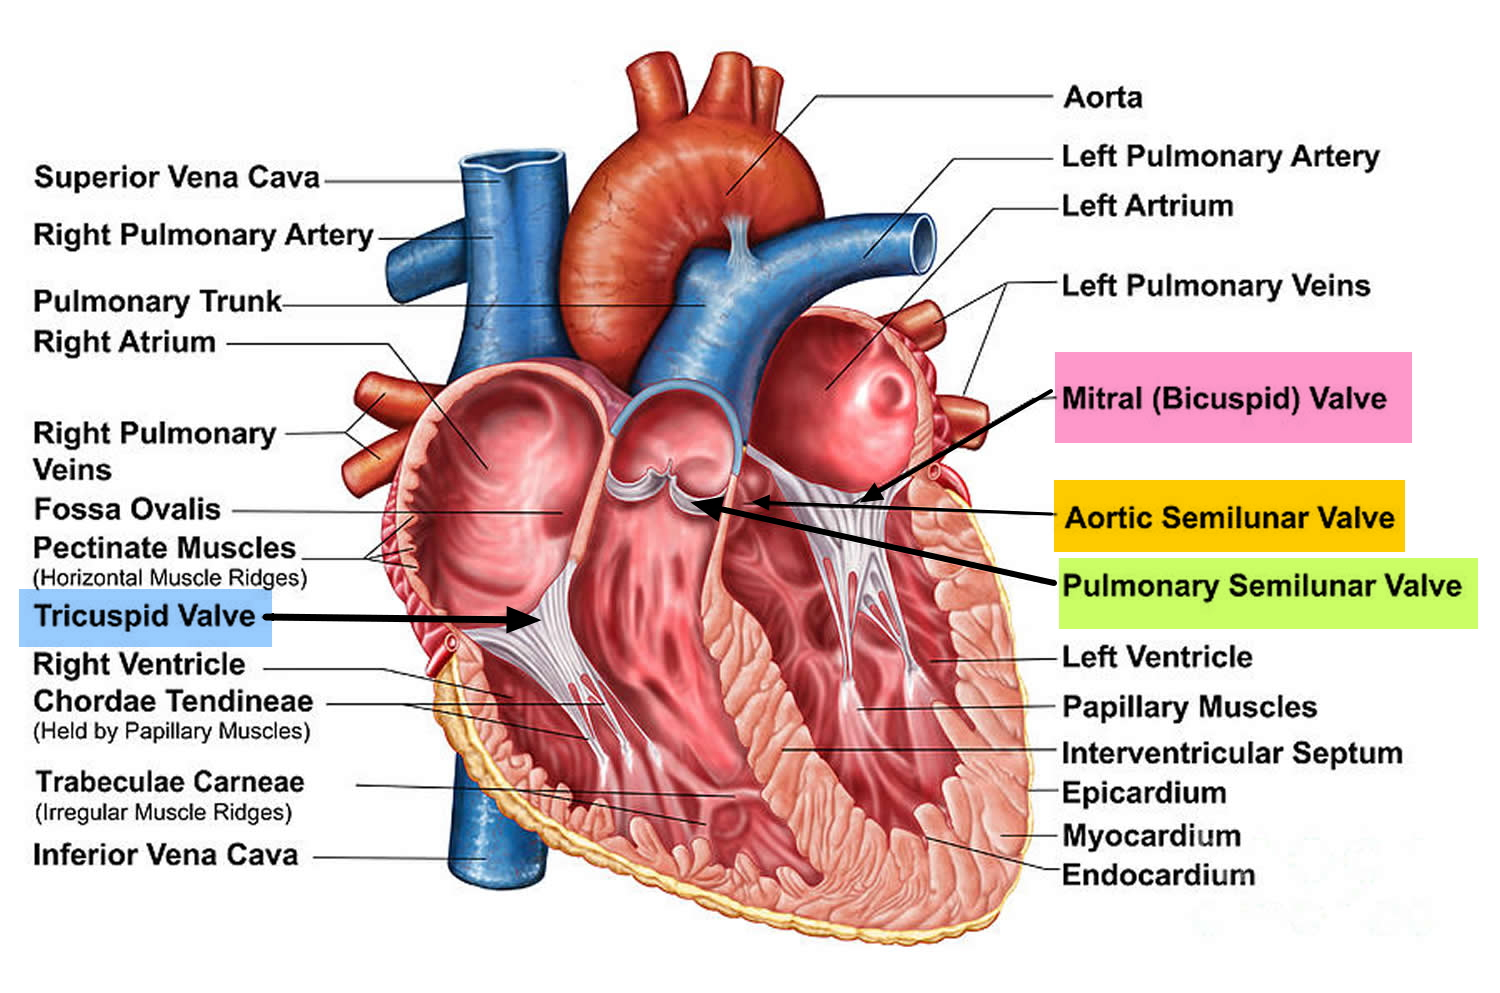 Heart Valves. Function, Purpose and How Many Heart Valves in Your Heart